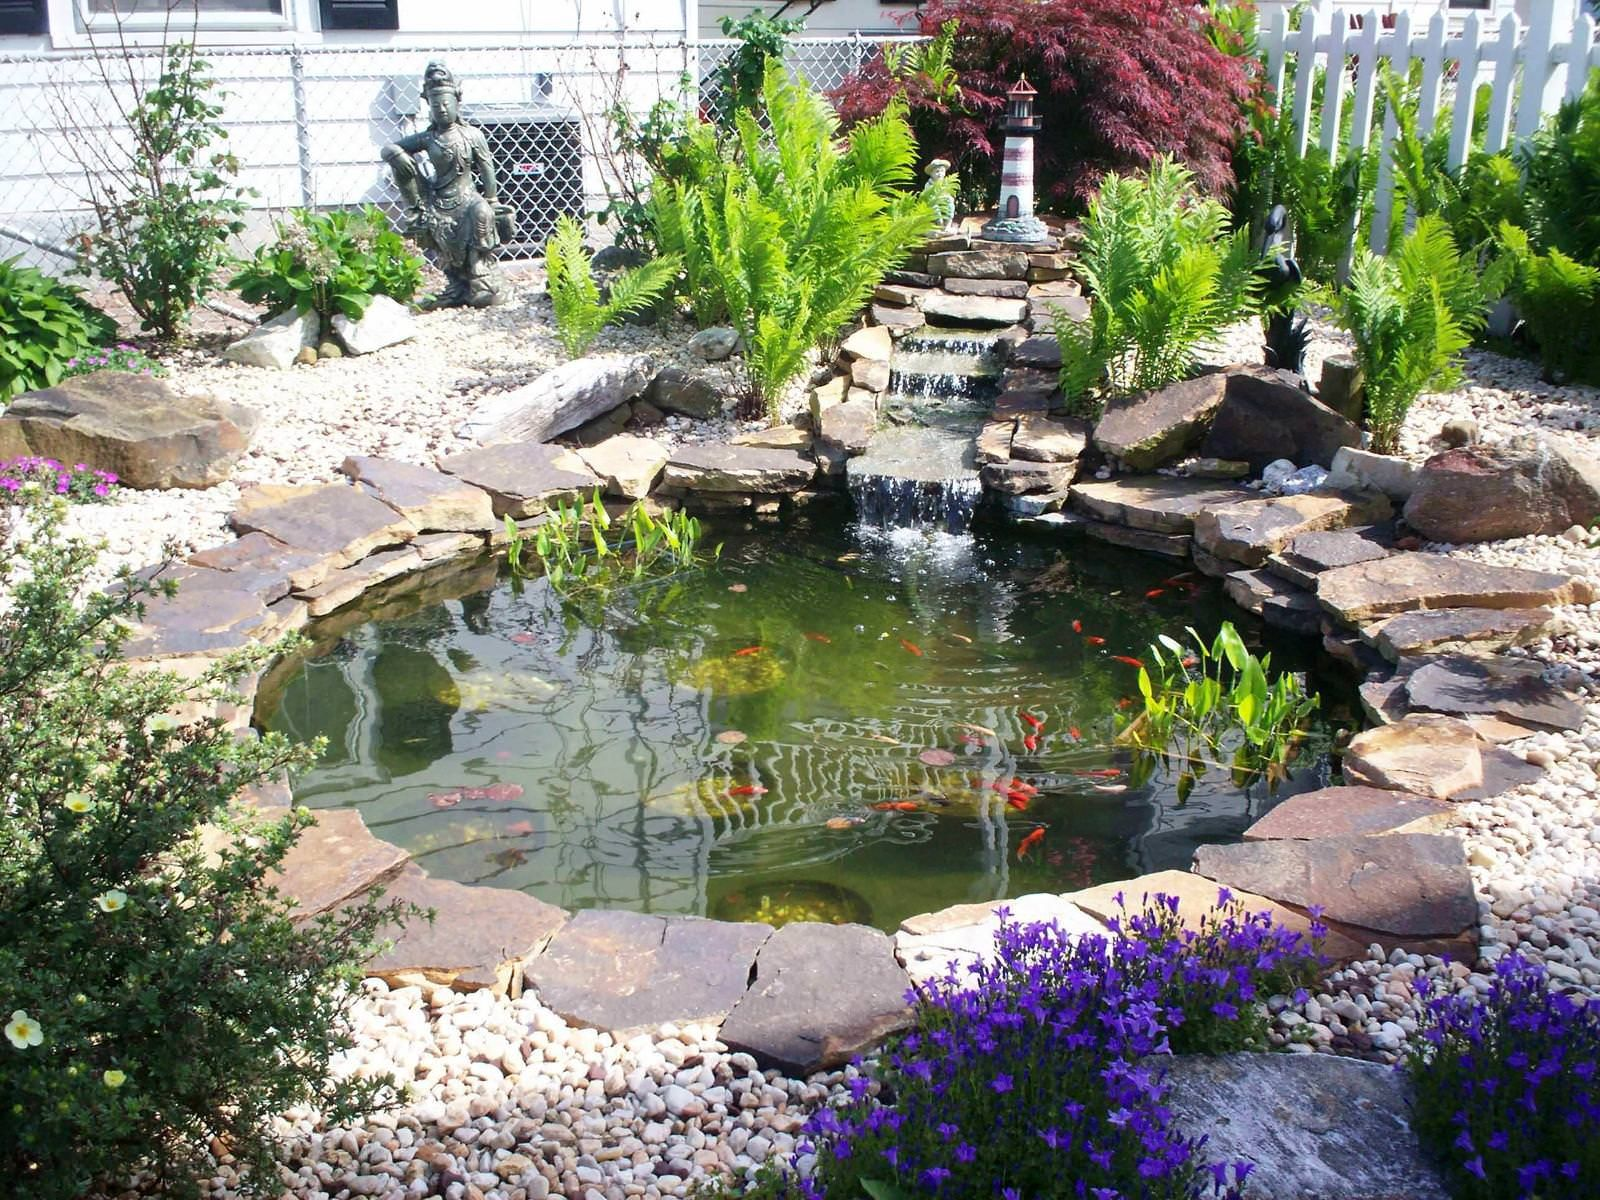 Small garden or backyard aquarium ideas practic ideas for Fish pond decorations